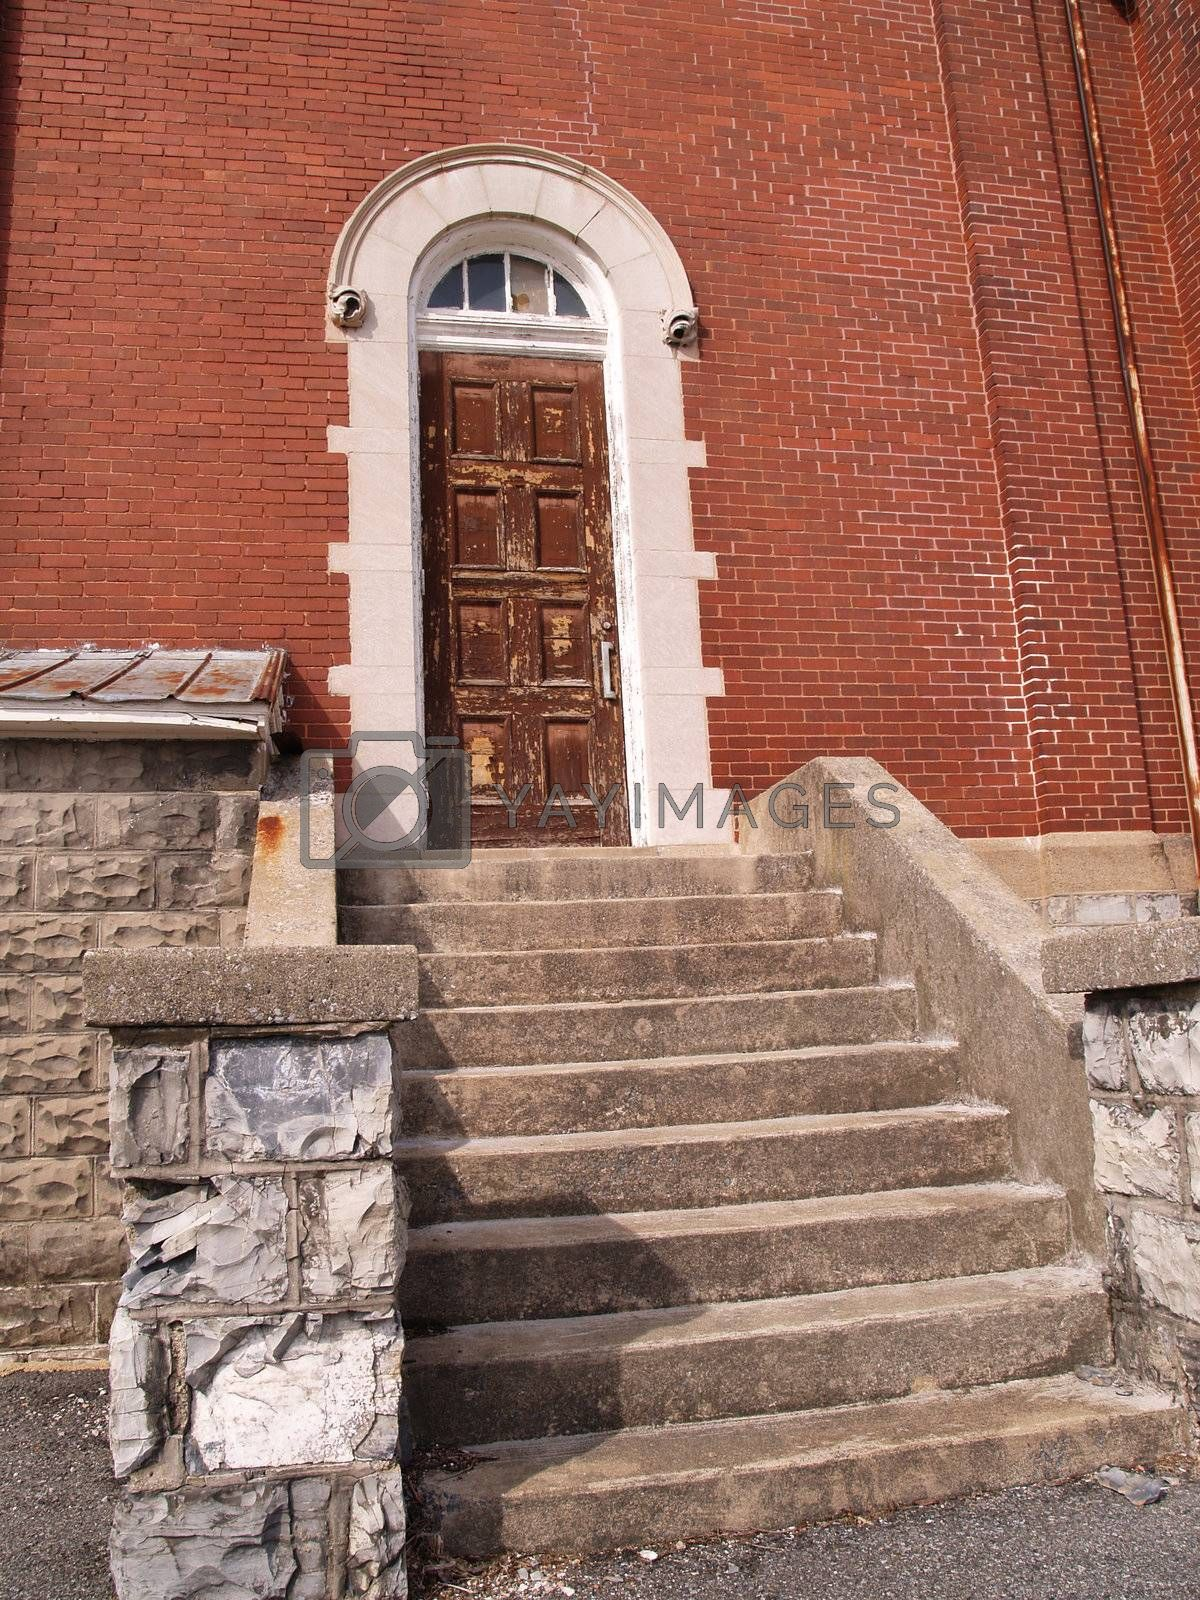 old wood door and steps for a red brick building